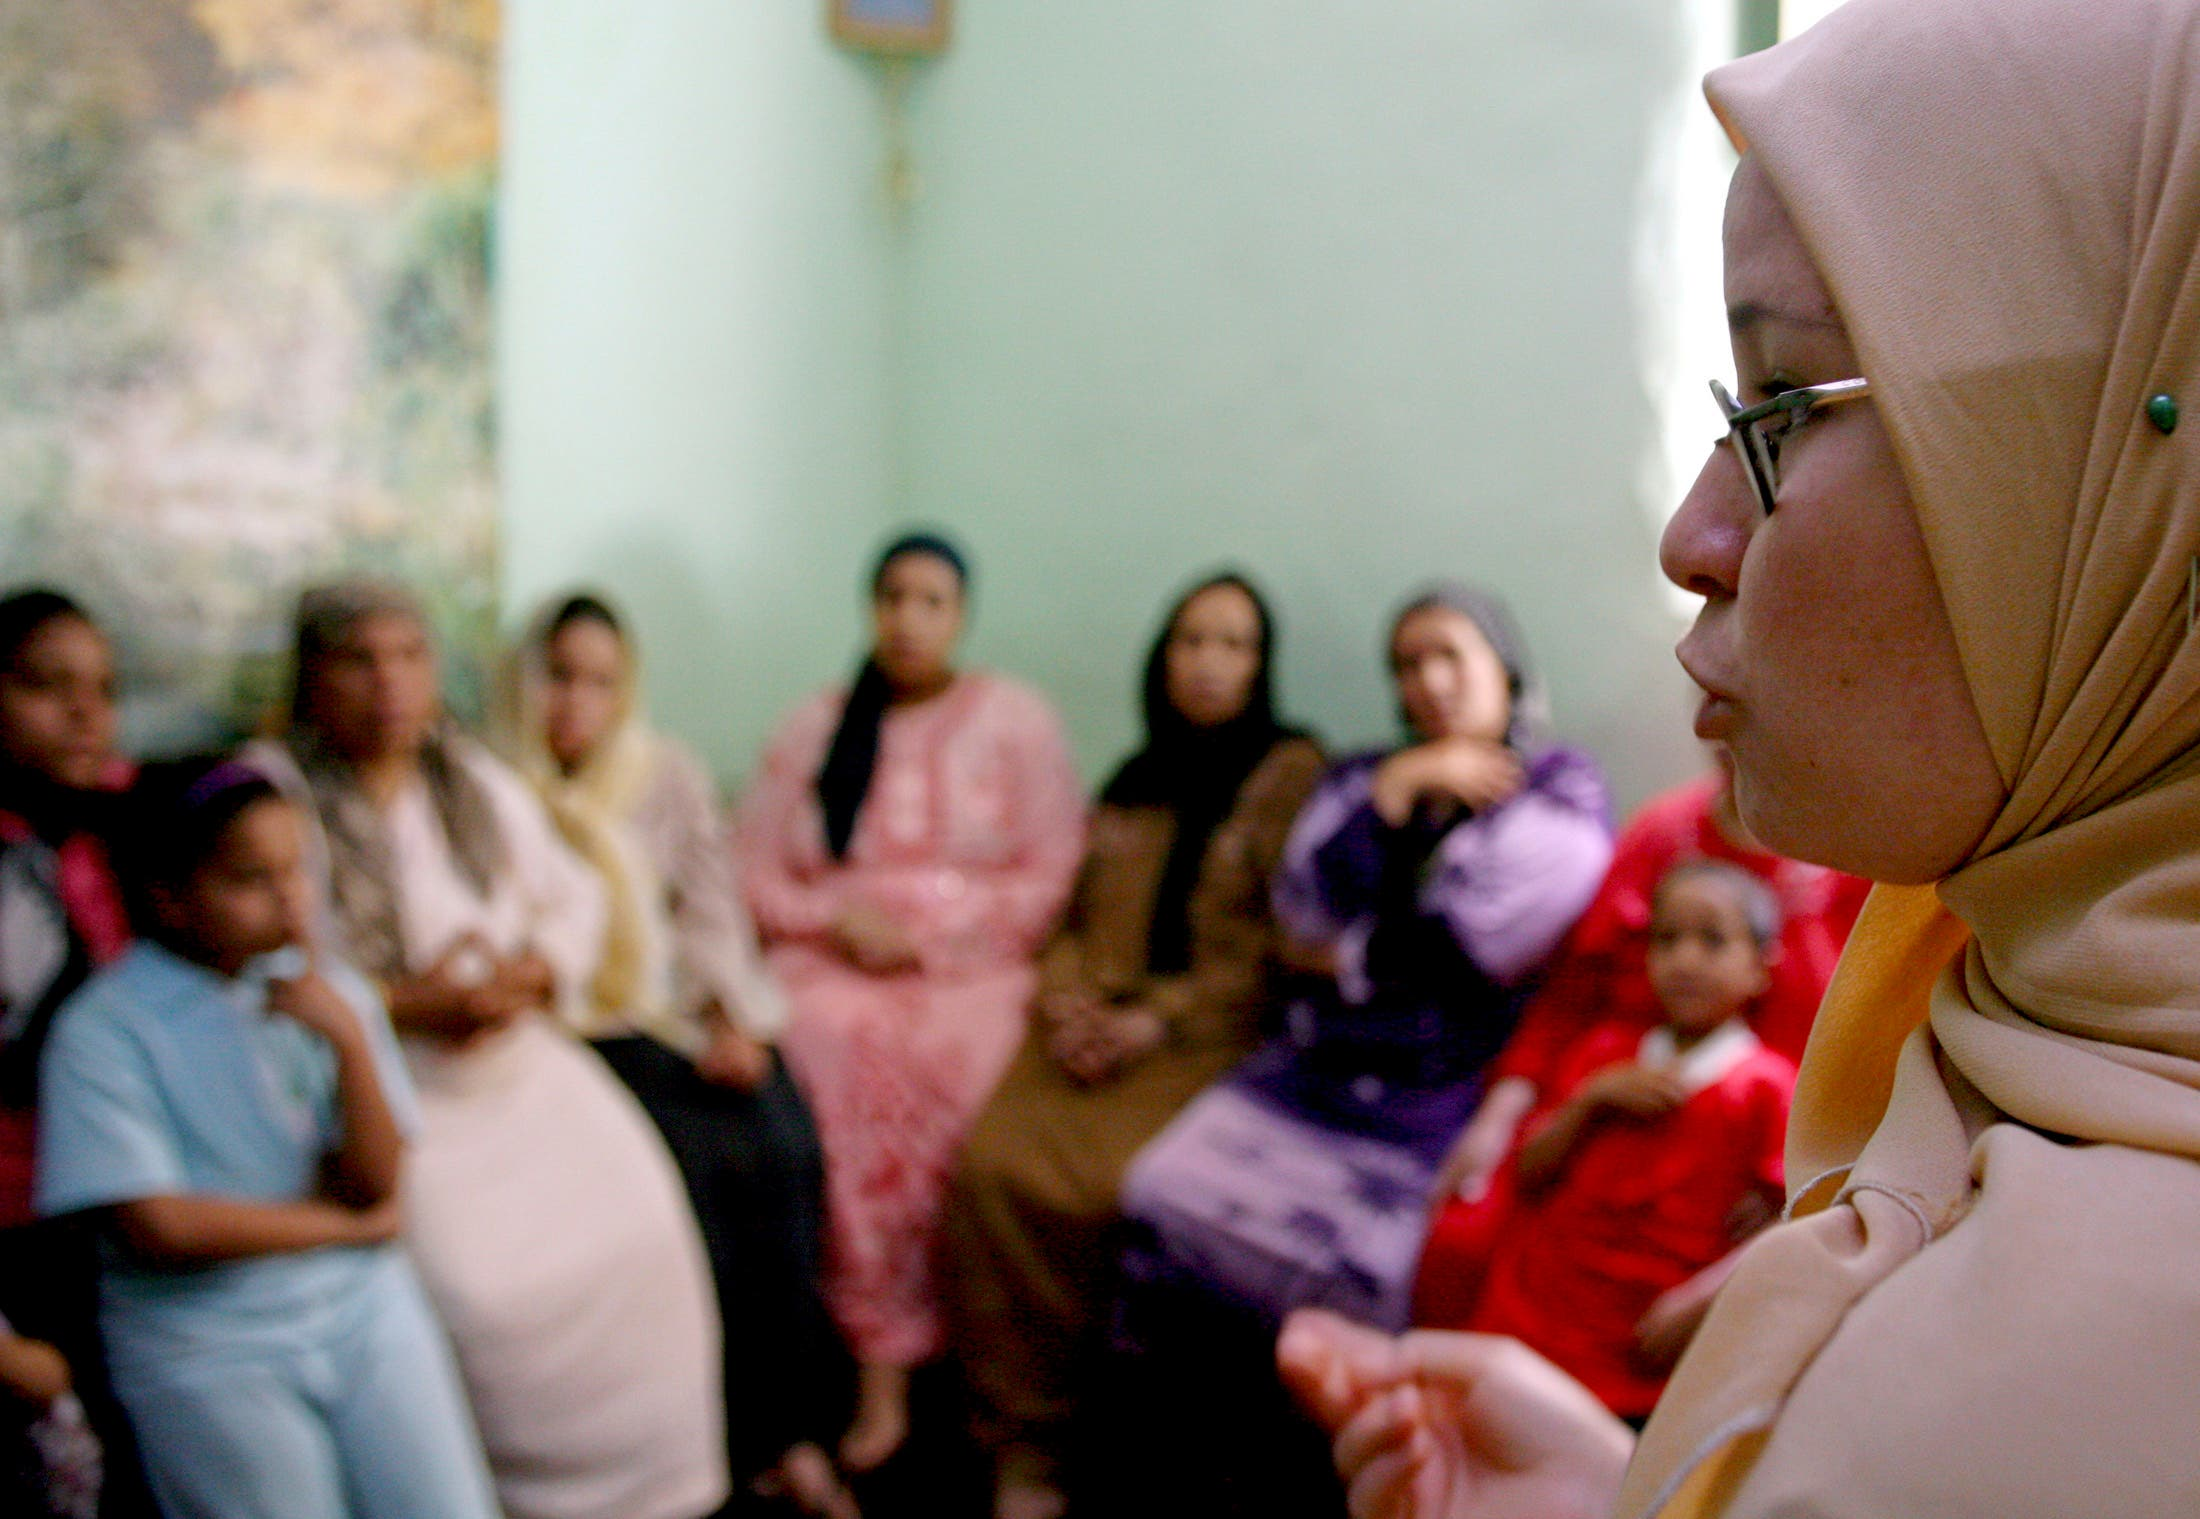 A counsellor talks to a group of women to try to convince them that they should not have FGM (Female Genital Mutilation) performed on their daughters in Minia, Egypt June 13, 2006. (Reuters)